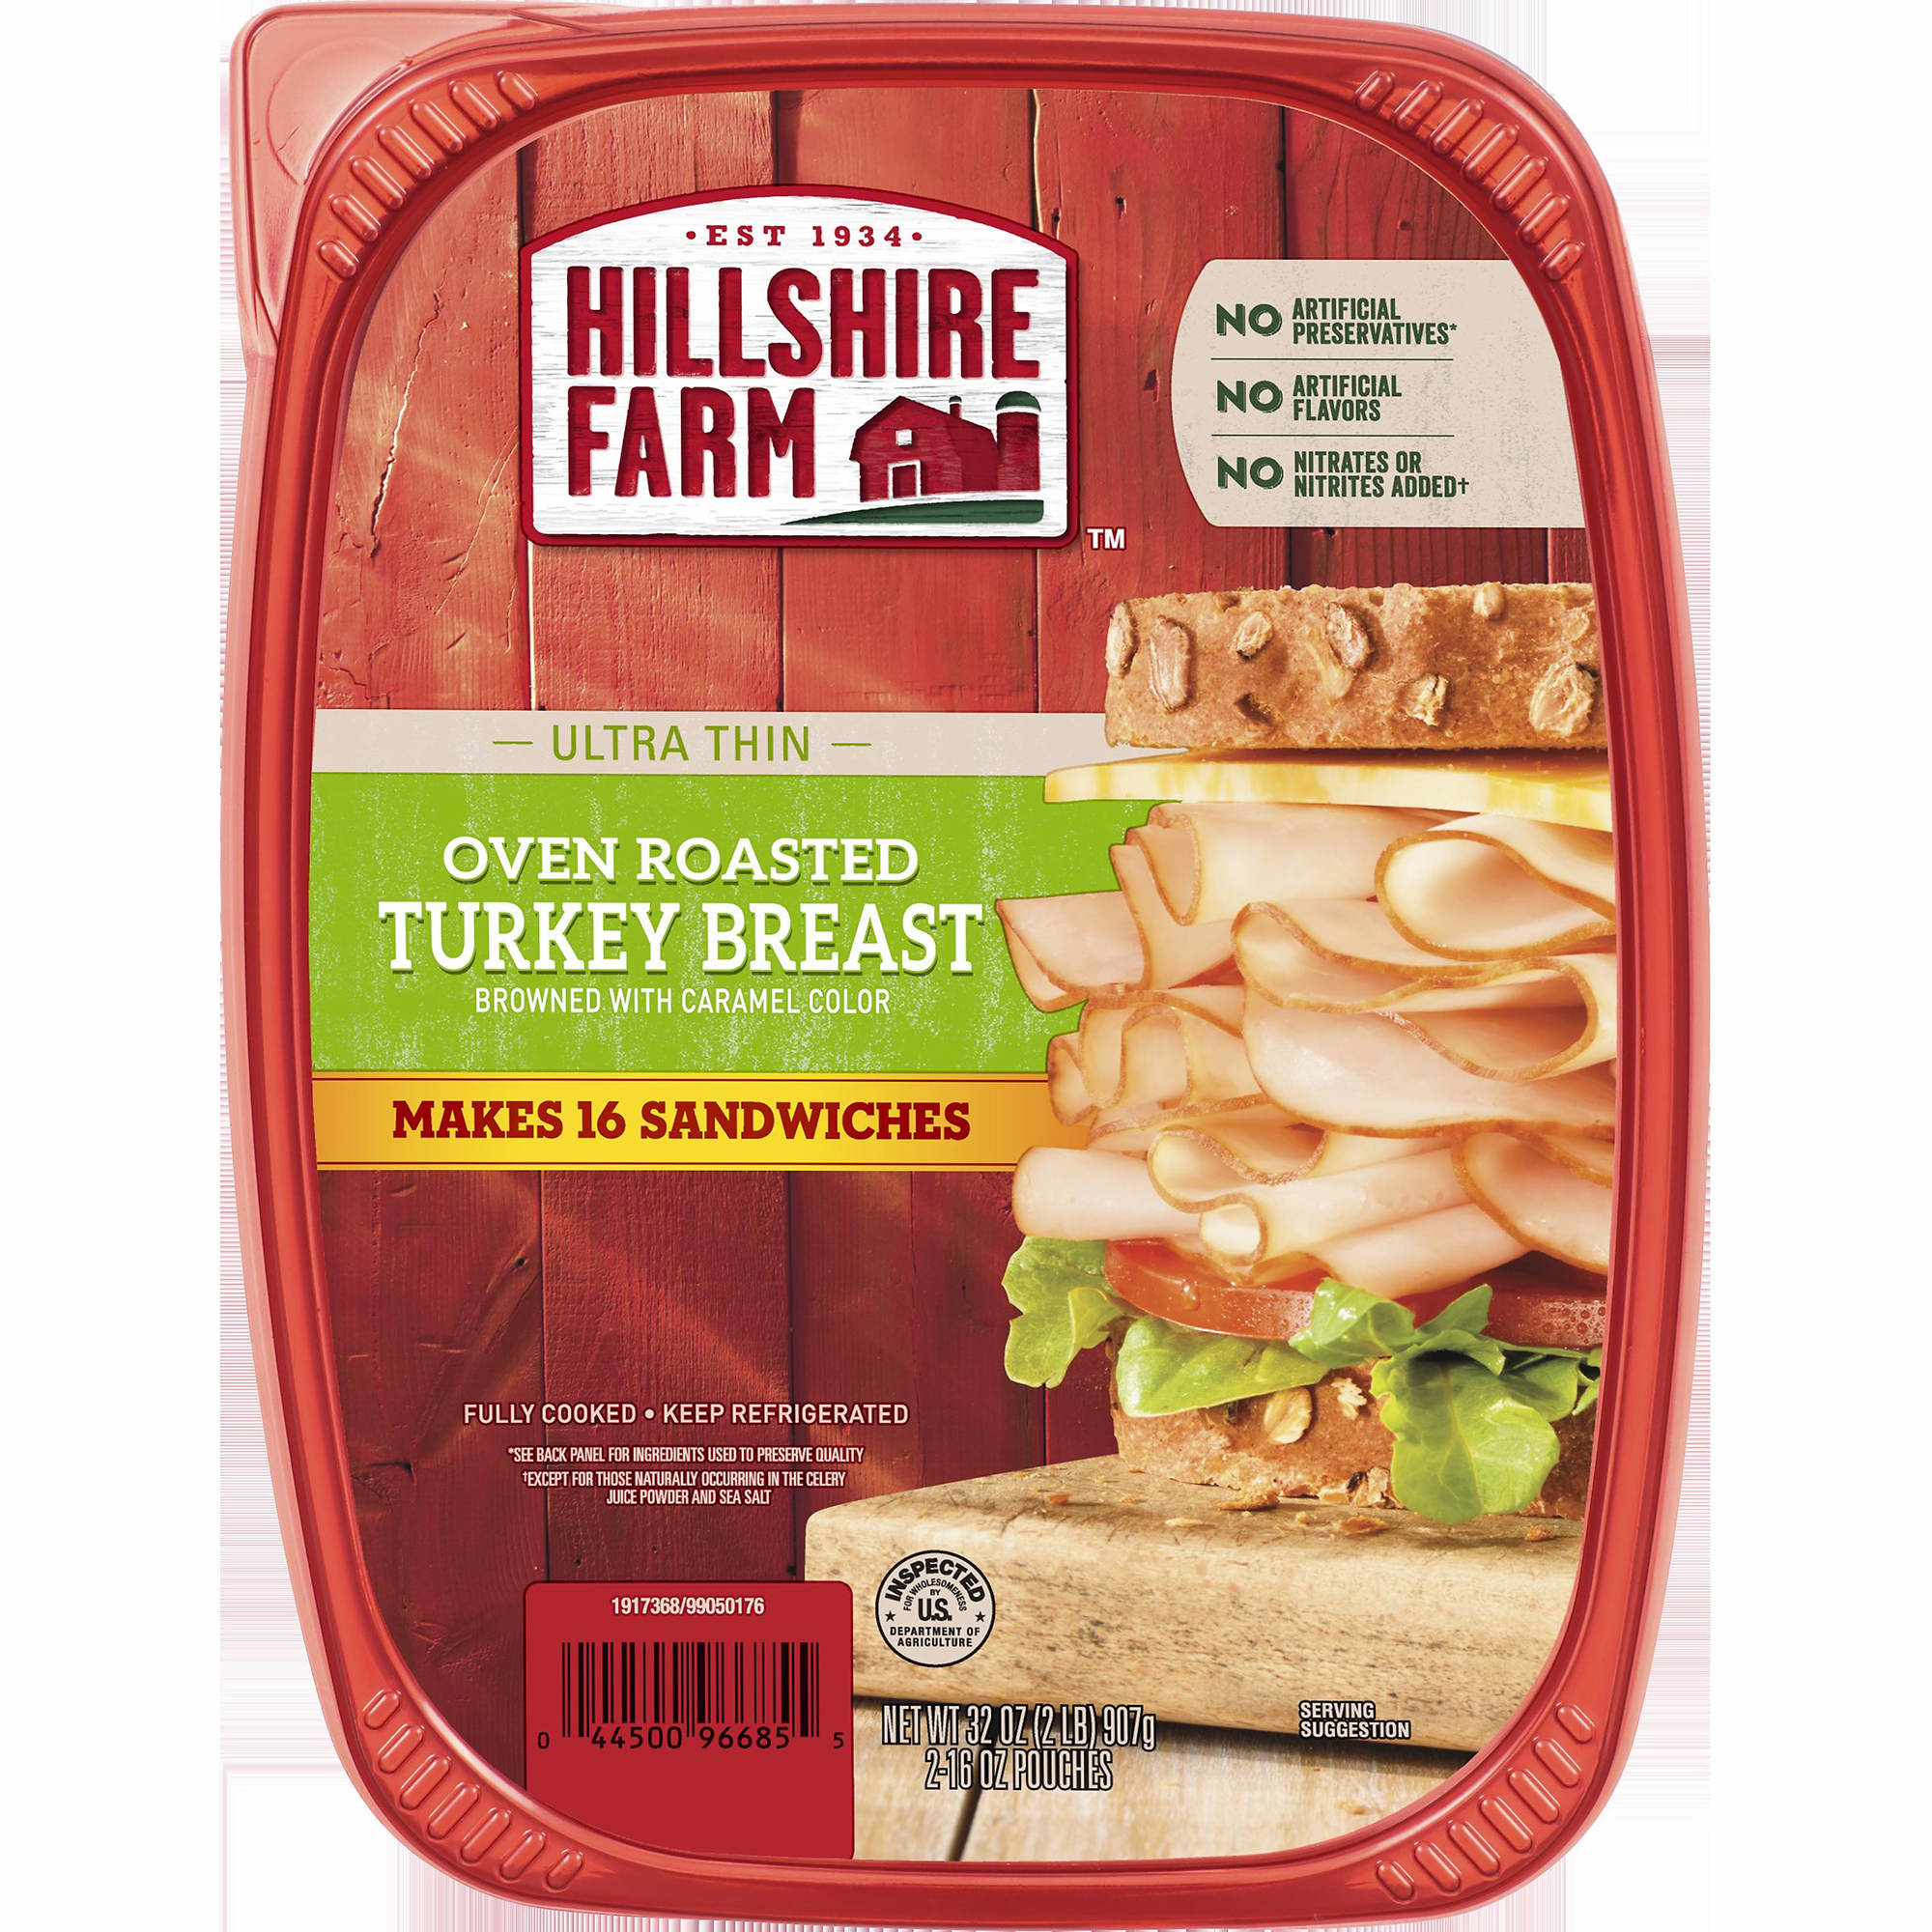 Hillshire Farm Oven Roasted Turkey Ultra Thin Lunch Meat, 32 oz., 2 pk.